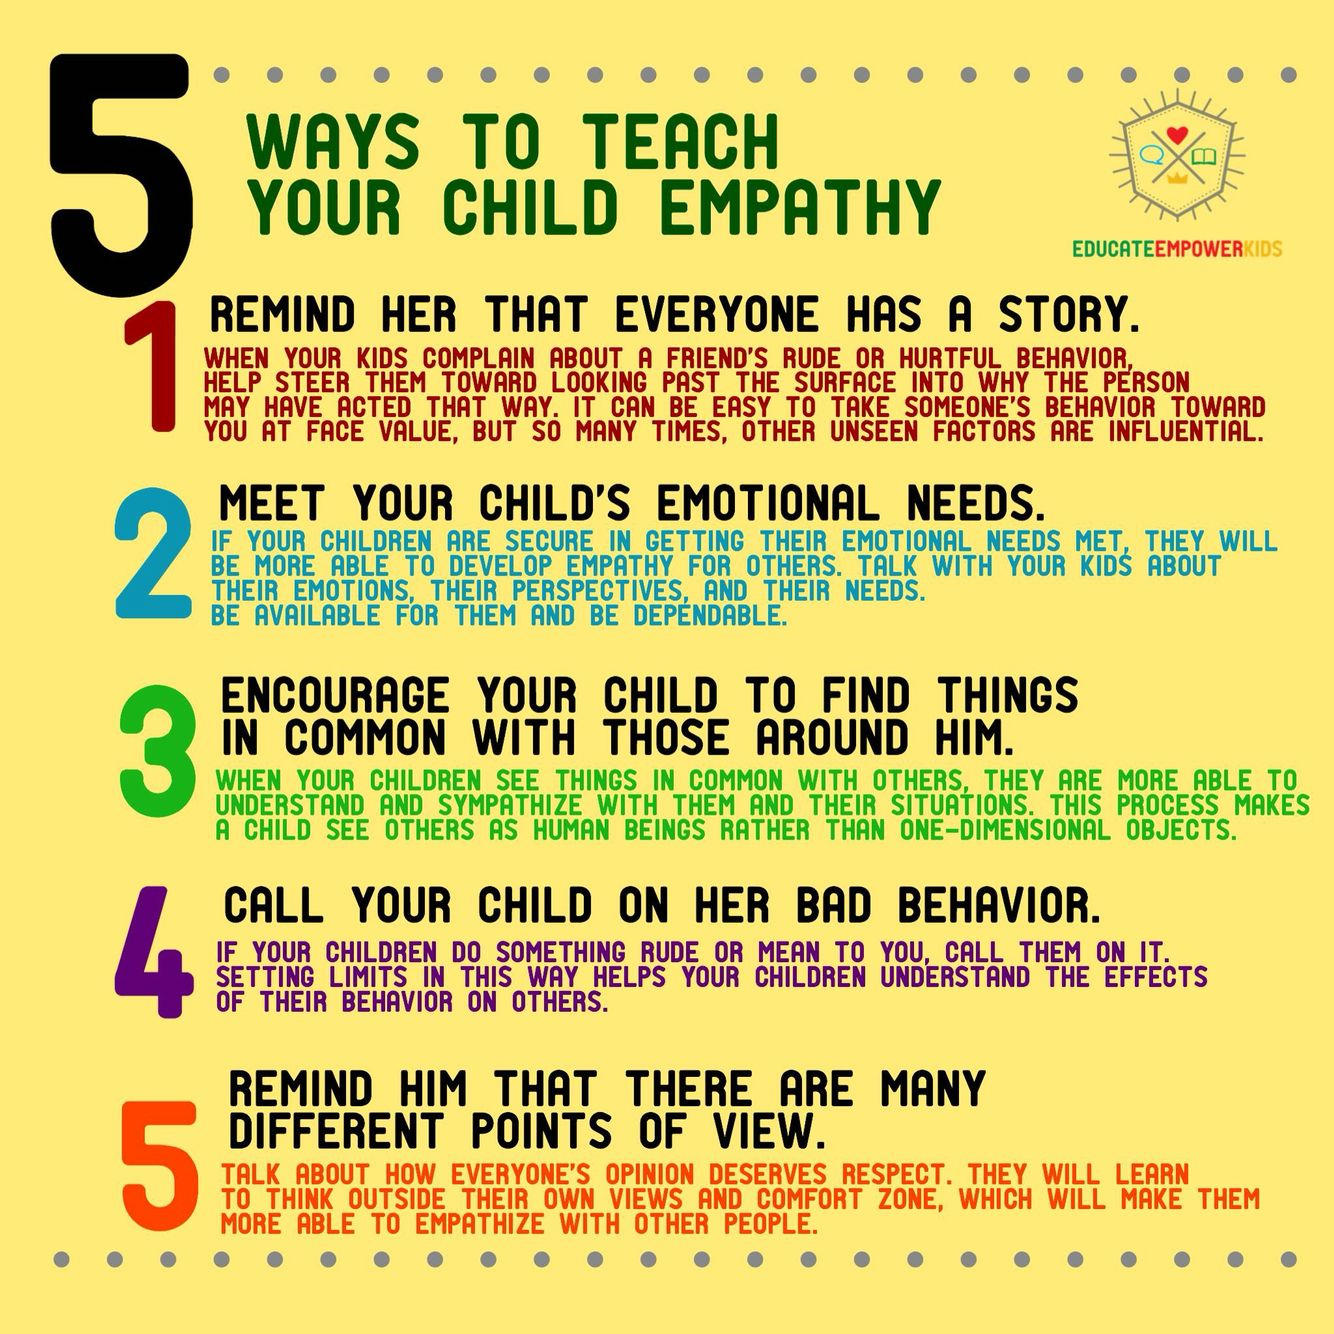 Teaching empathy | Things we should be teaching our kids | Pinterest